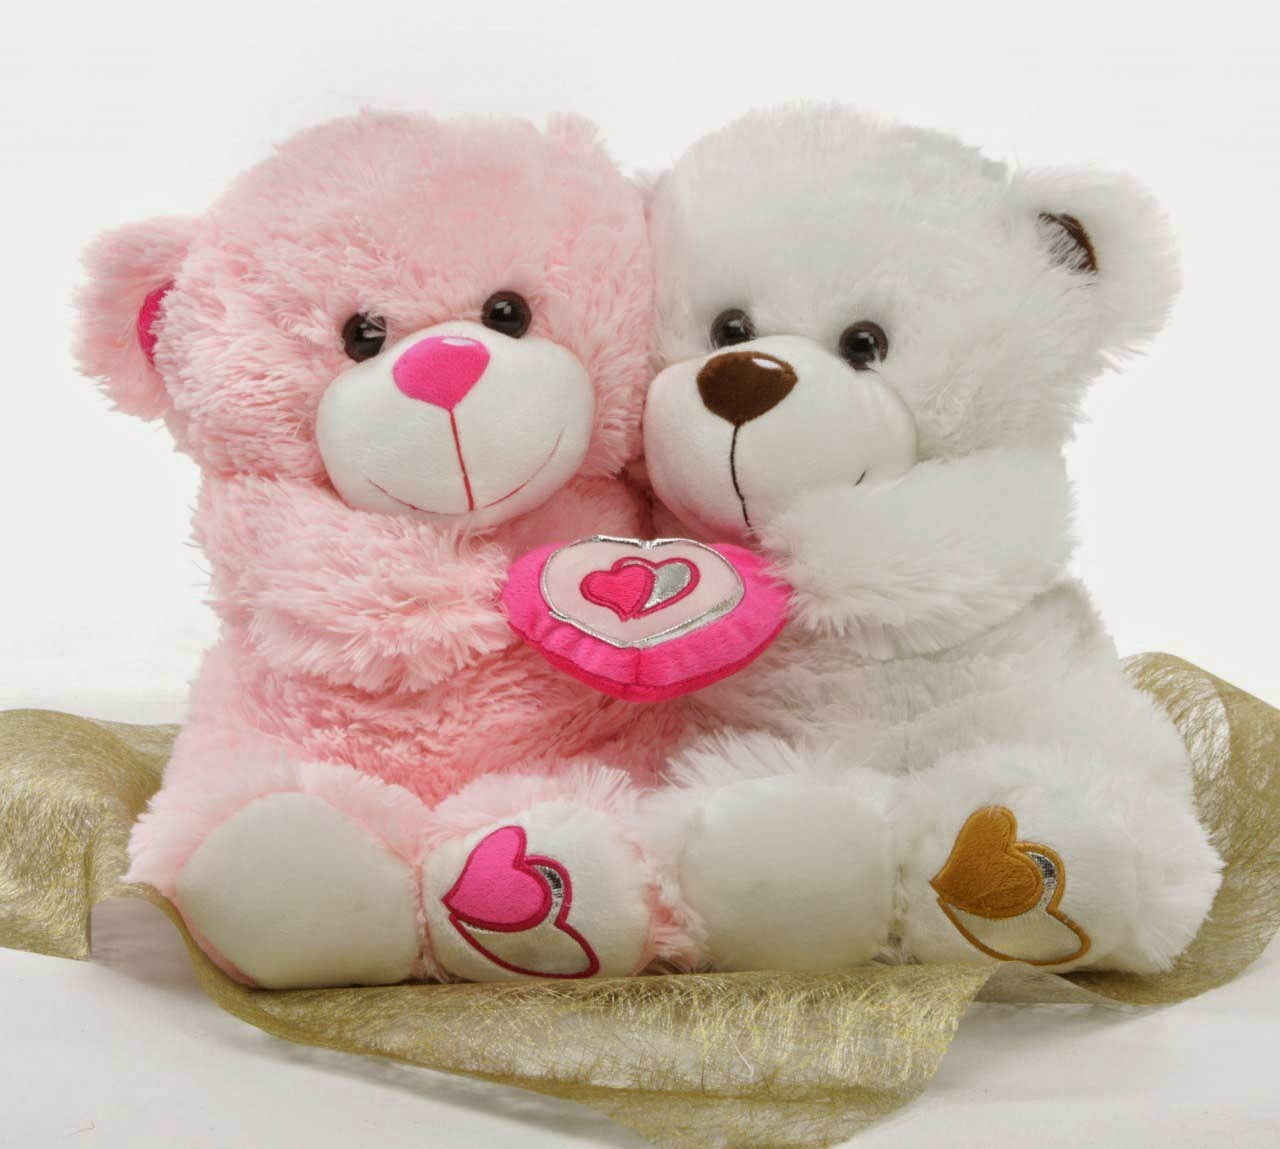 Happy-Teddy-Bear-Day-Quotes1